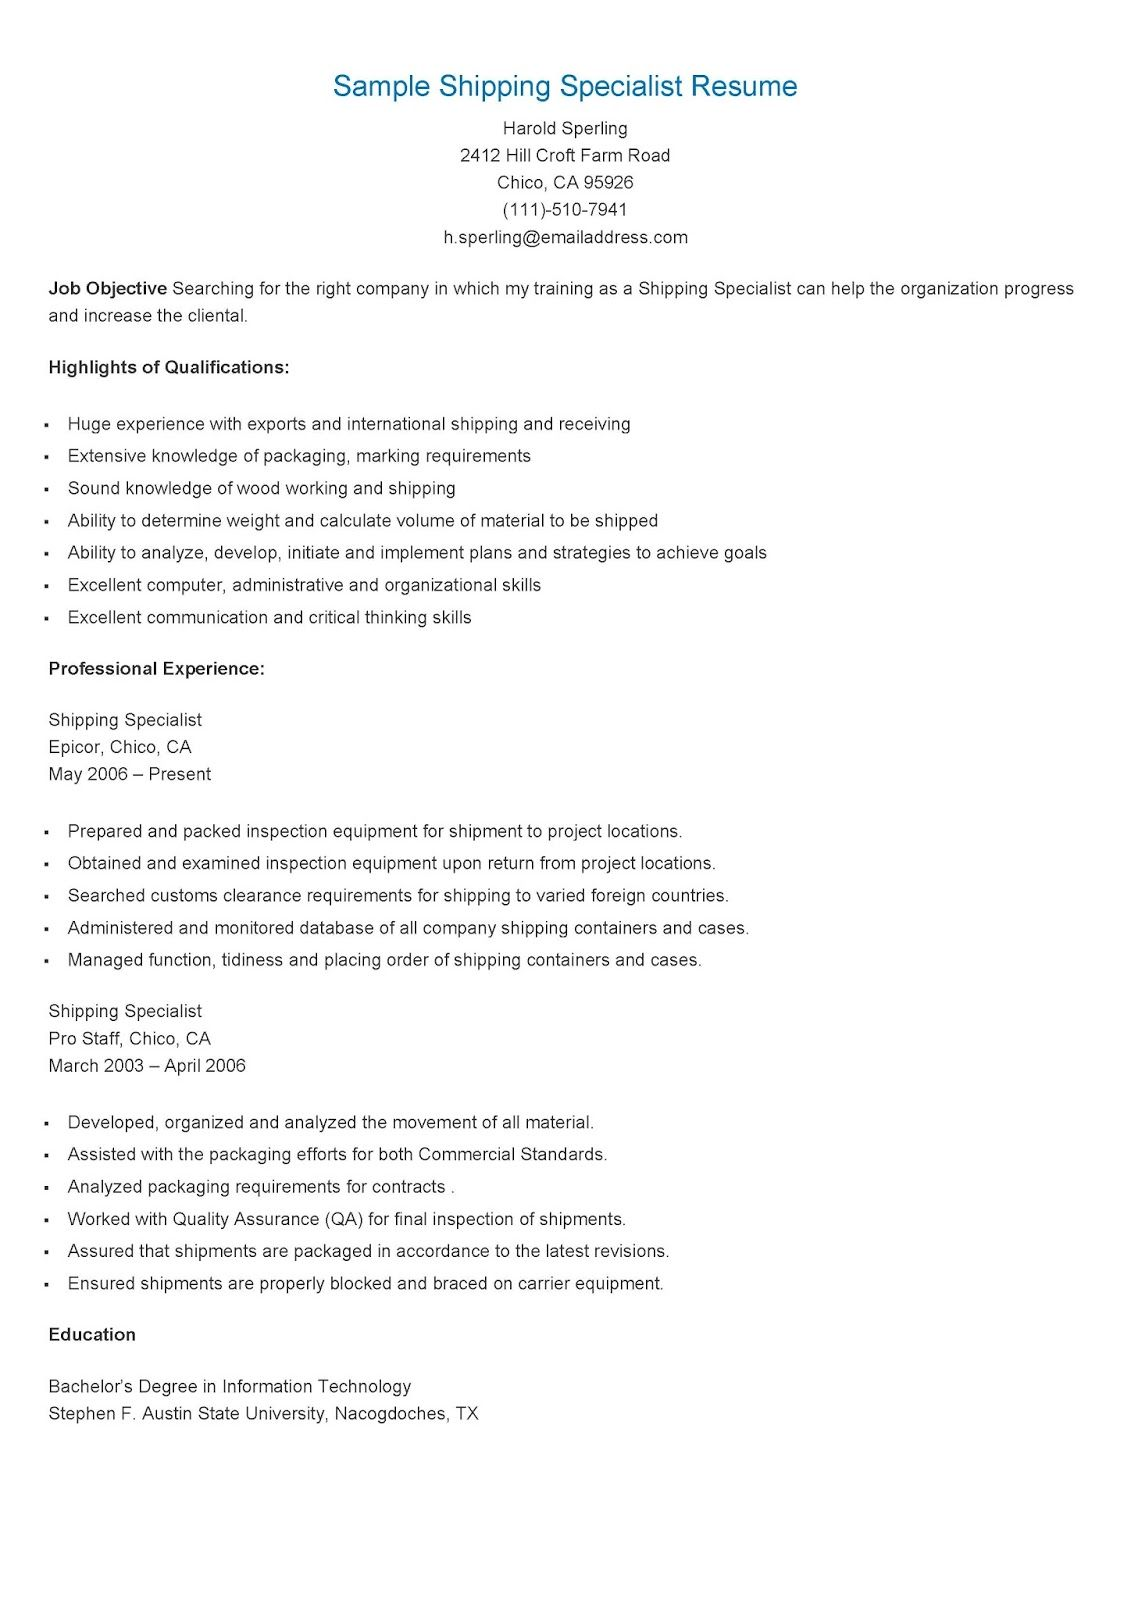 Sample Shipping Specialist Resume  Resame